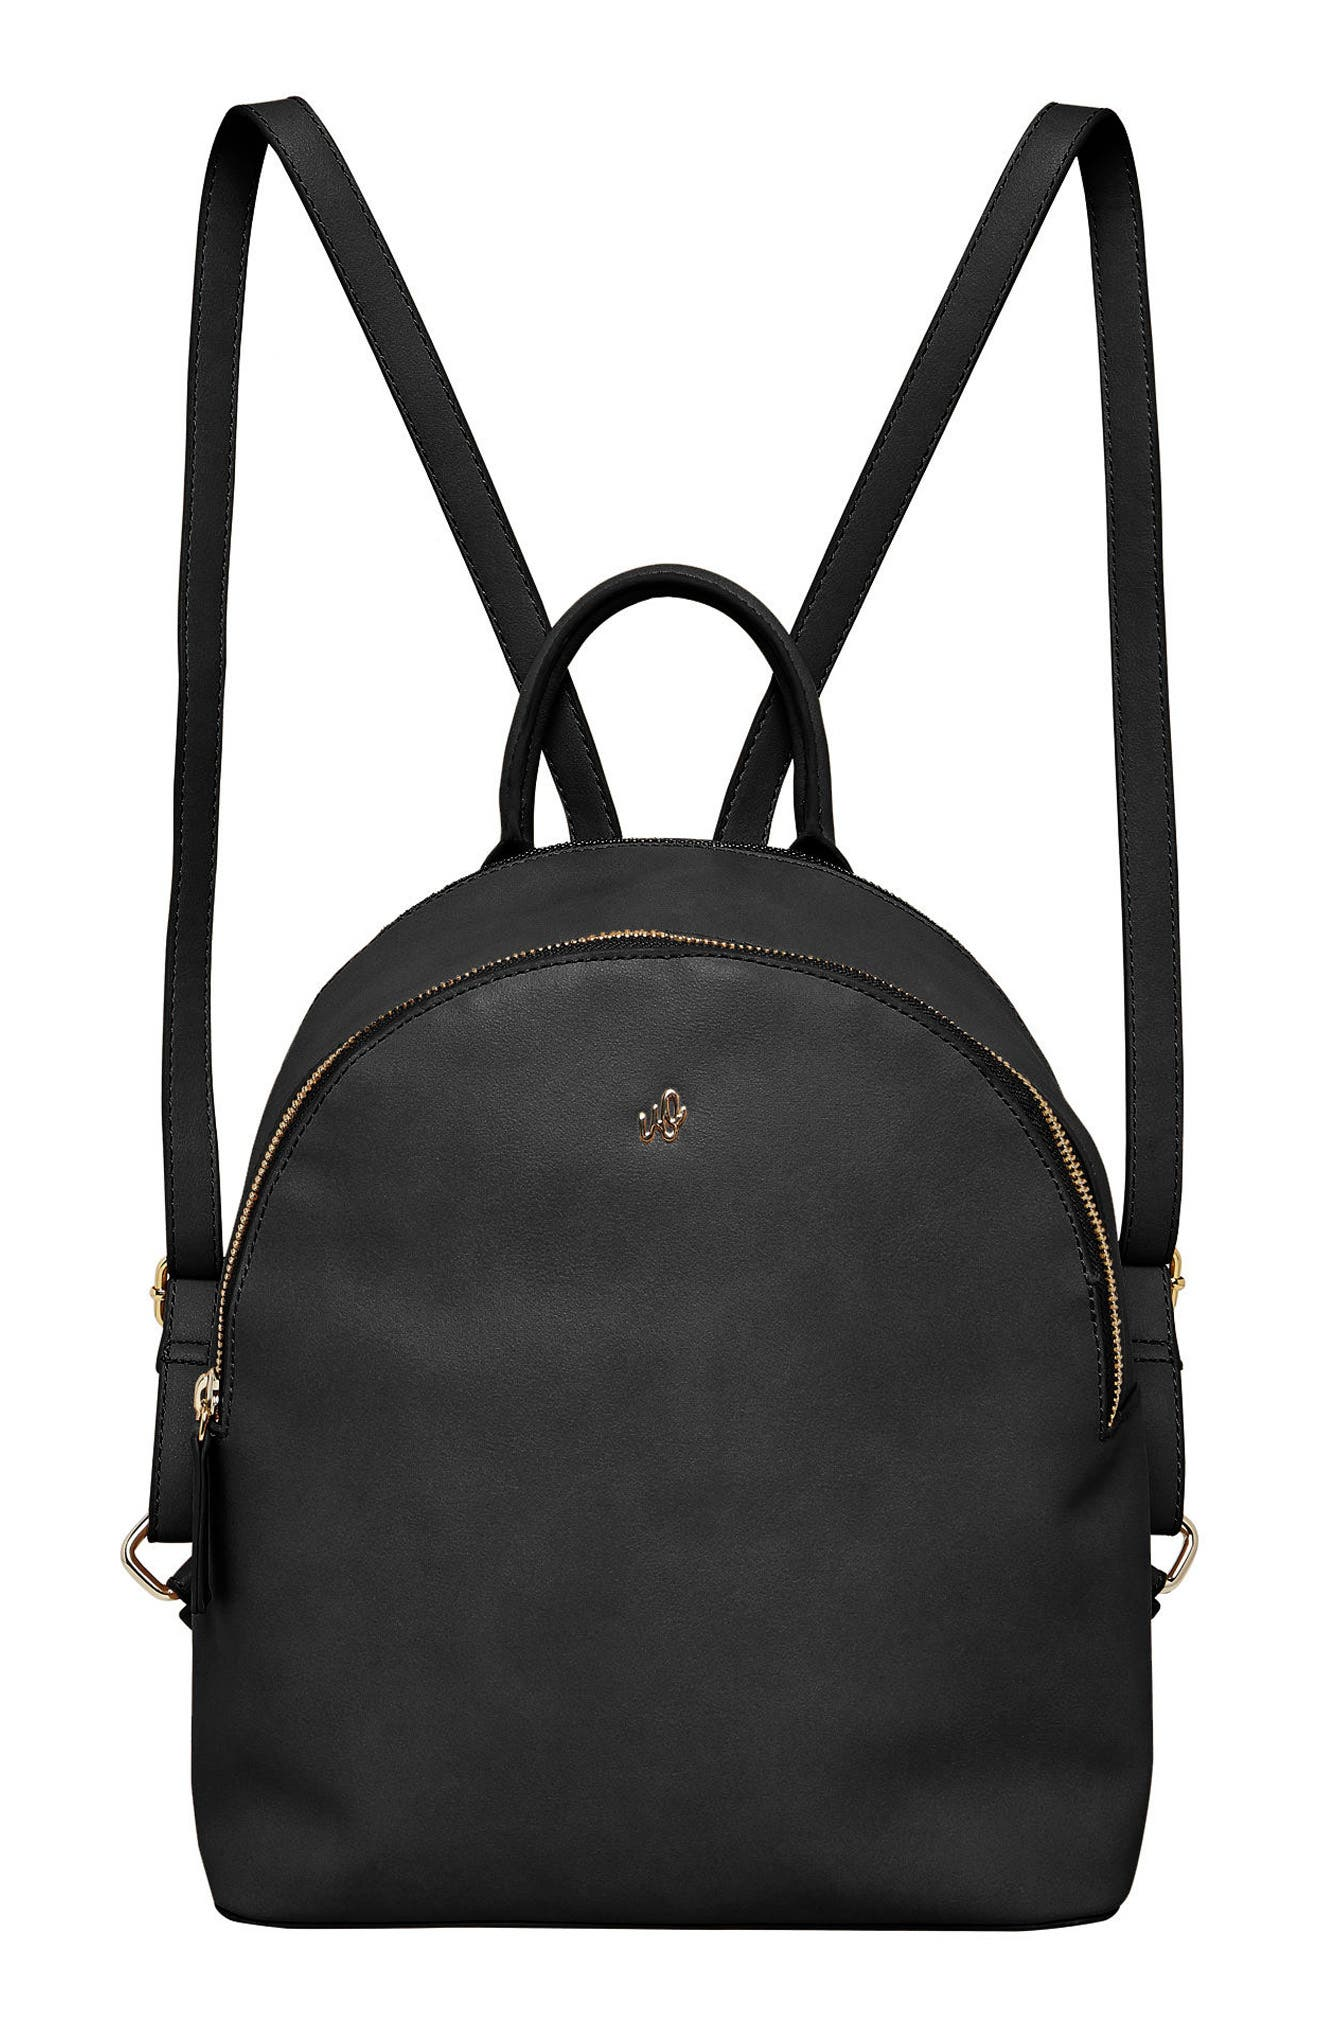 Magic Vegan Leather Backpack,                         Main,                         color, 001